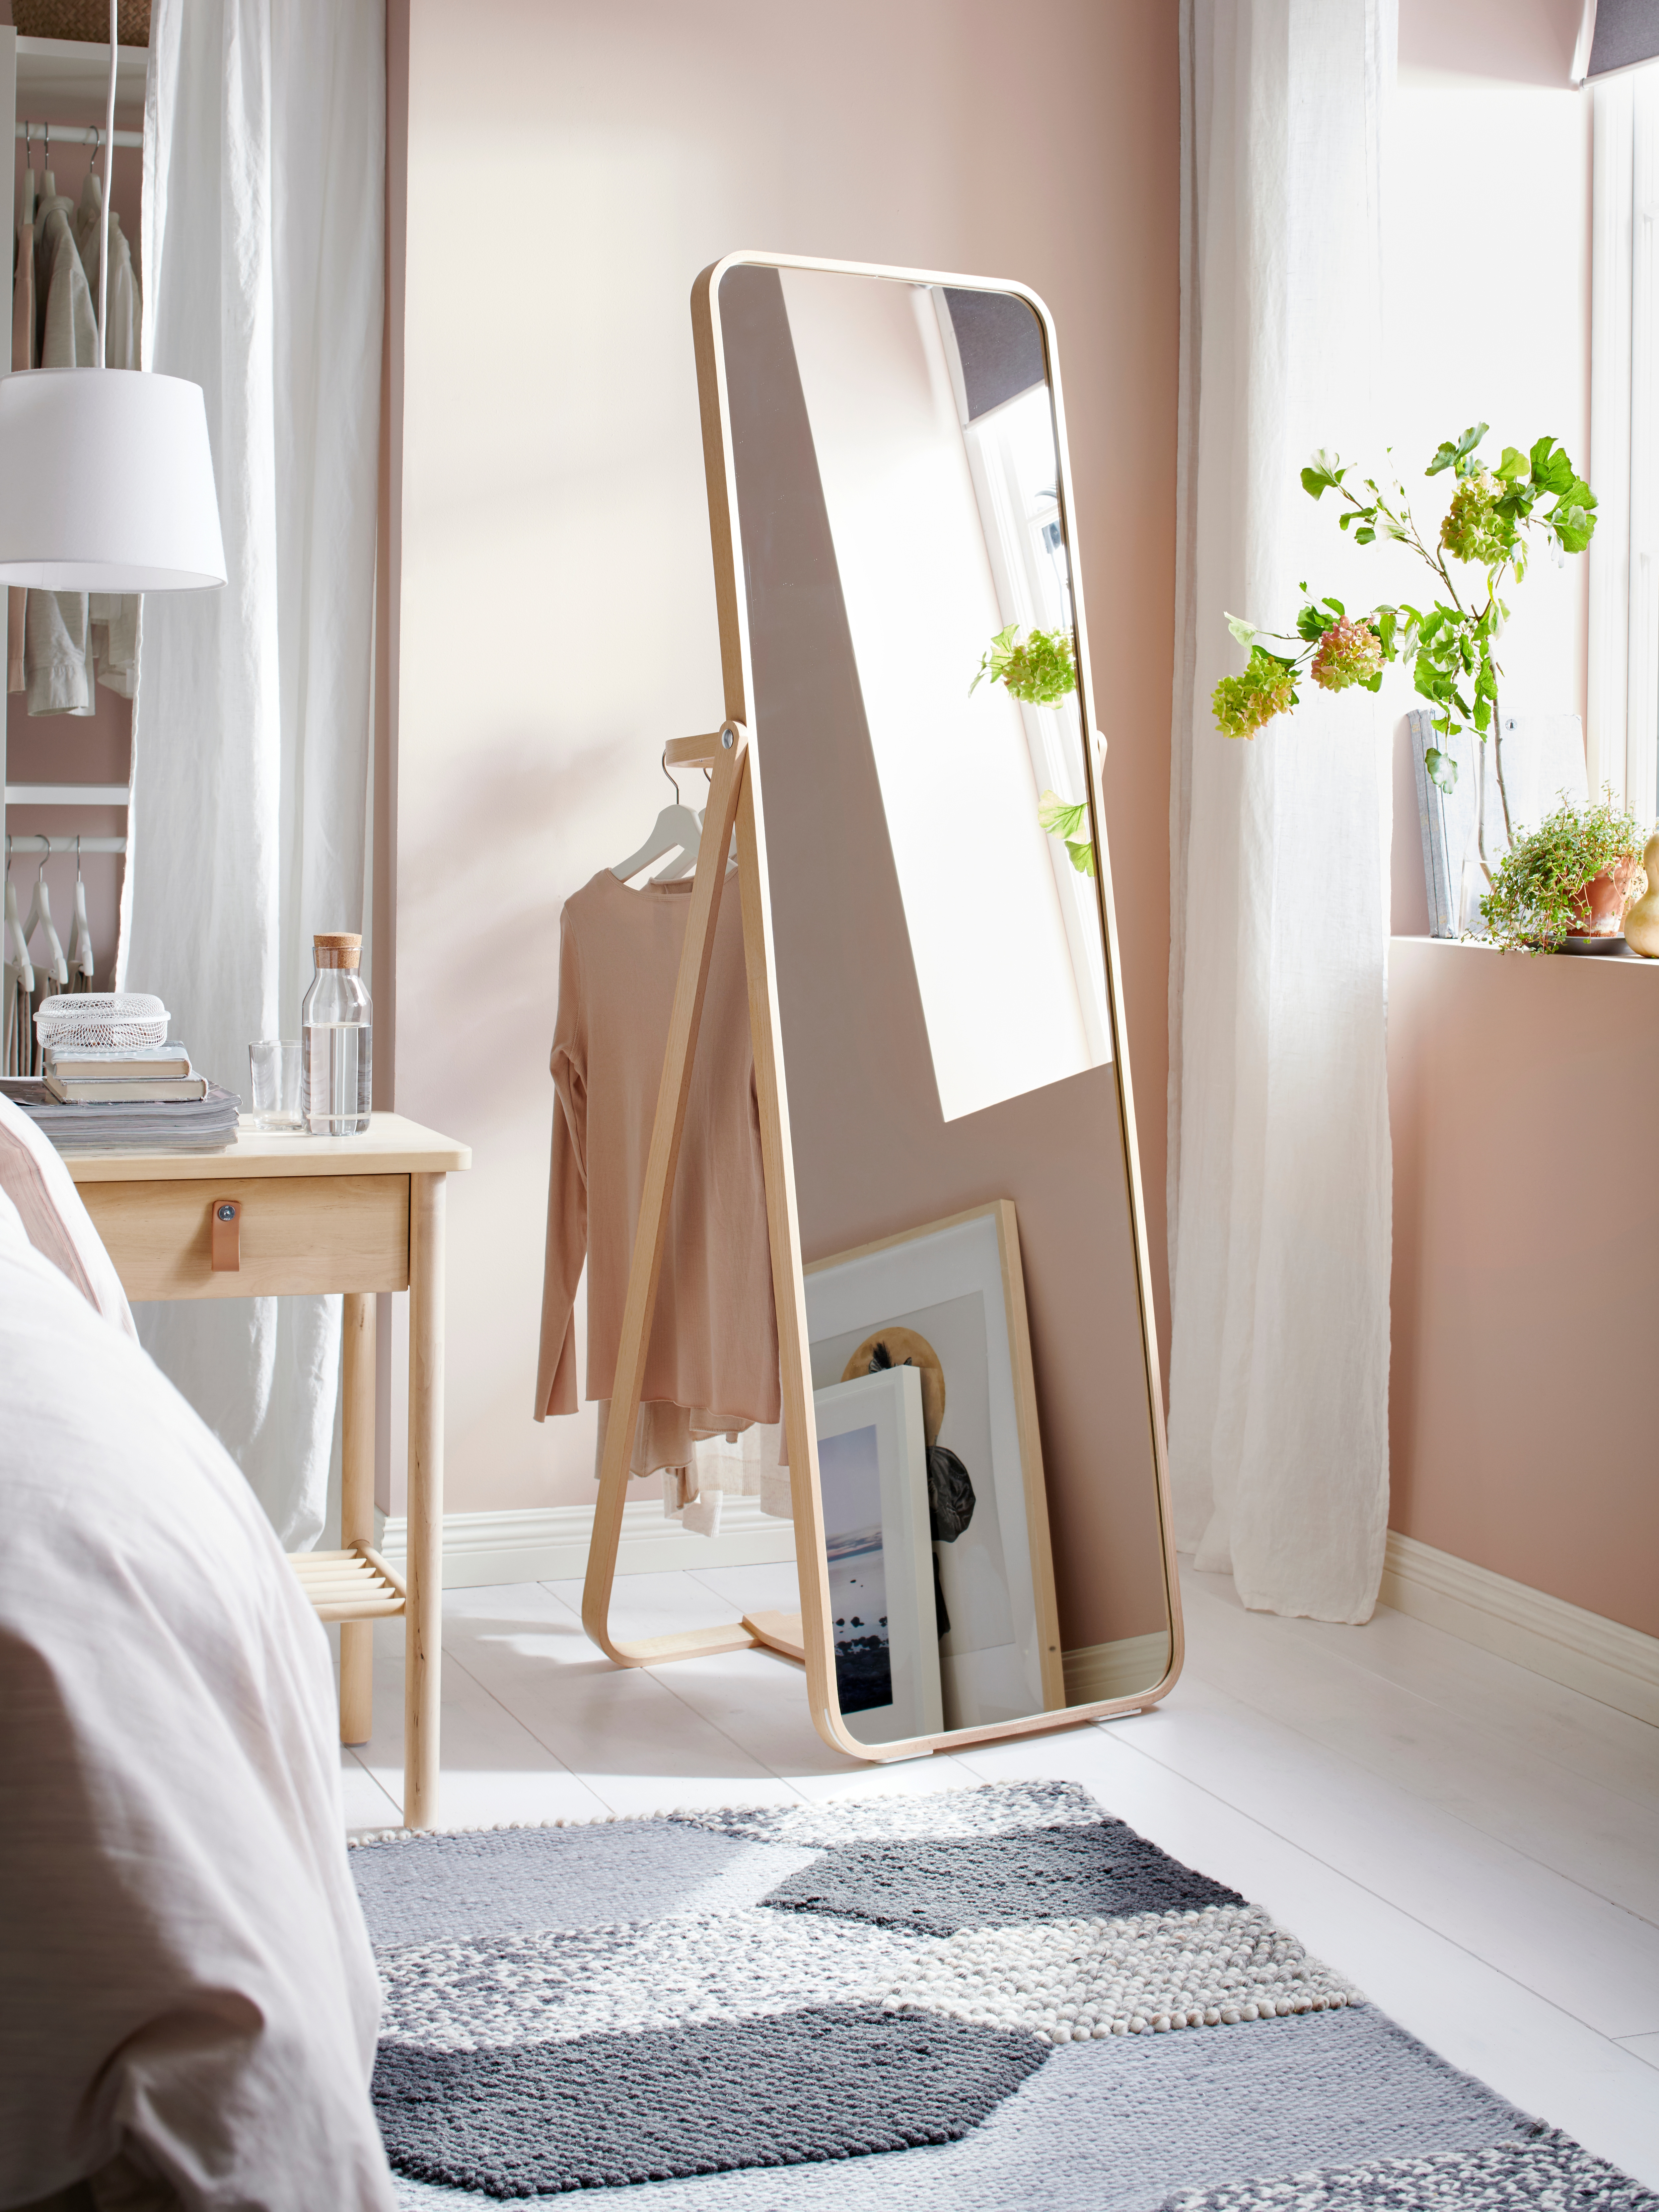 An ash IKORNNES standing mirror has a sweater hanging on its attached back rail, facing a window in an airy, pink bedroom.